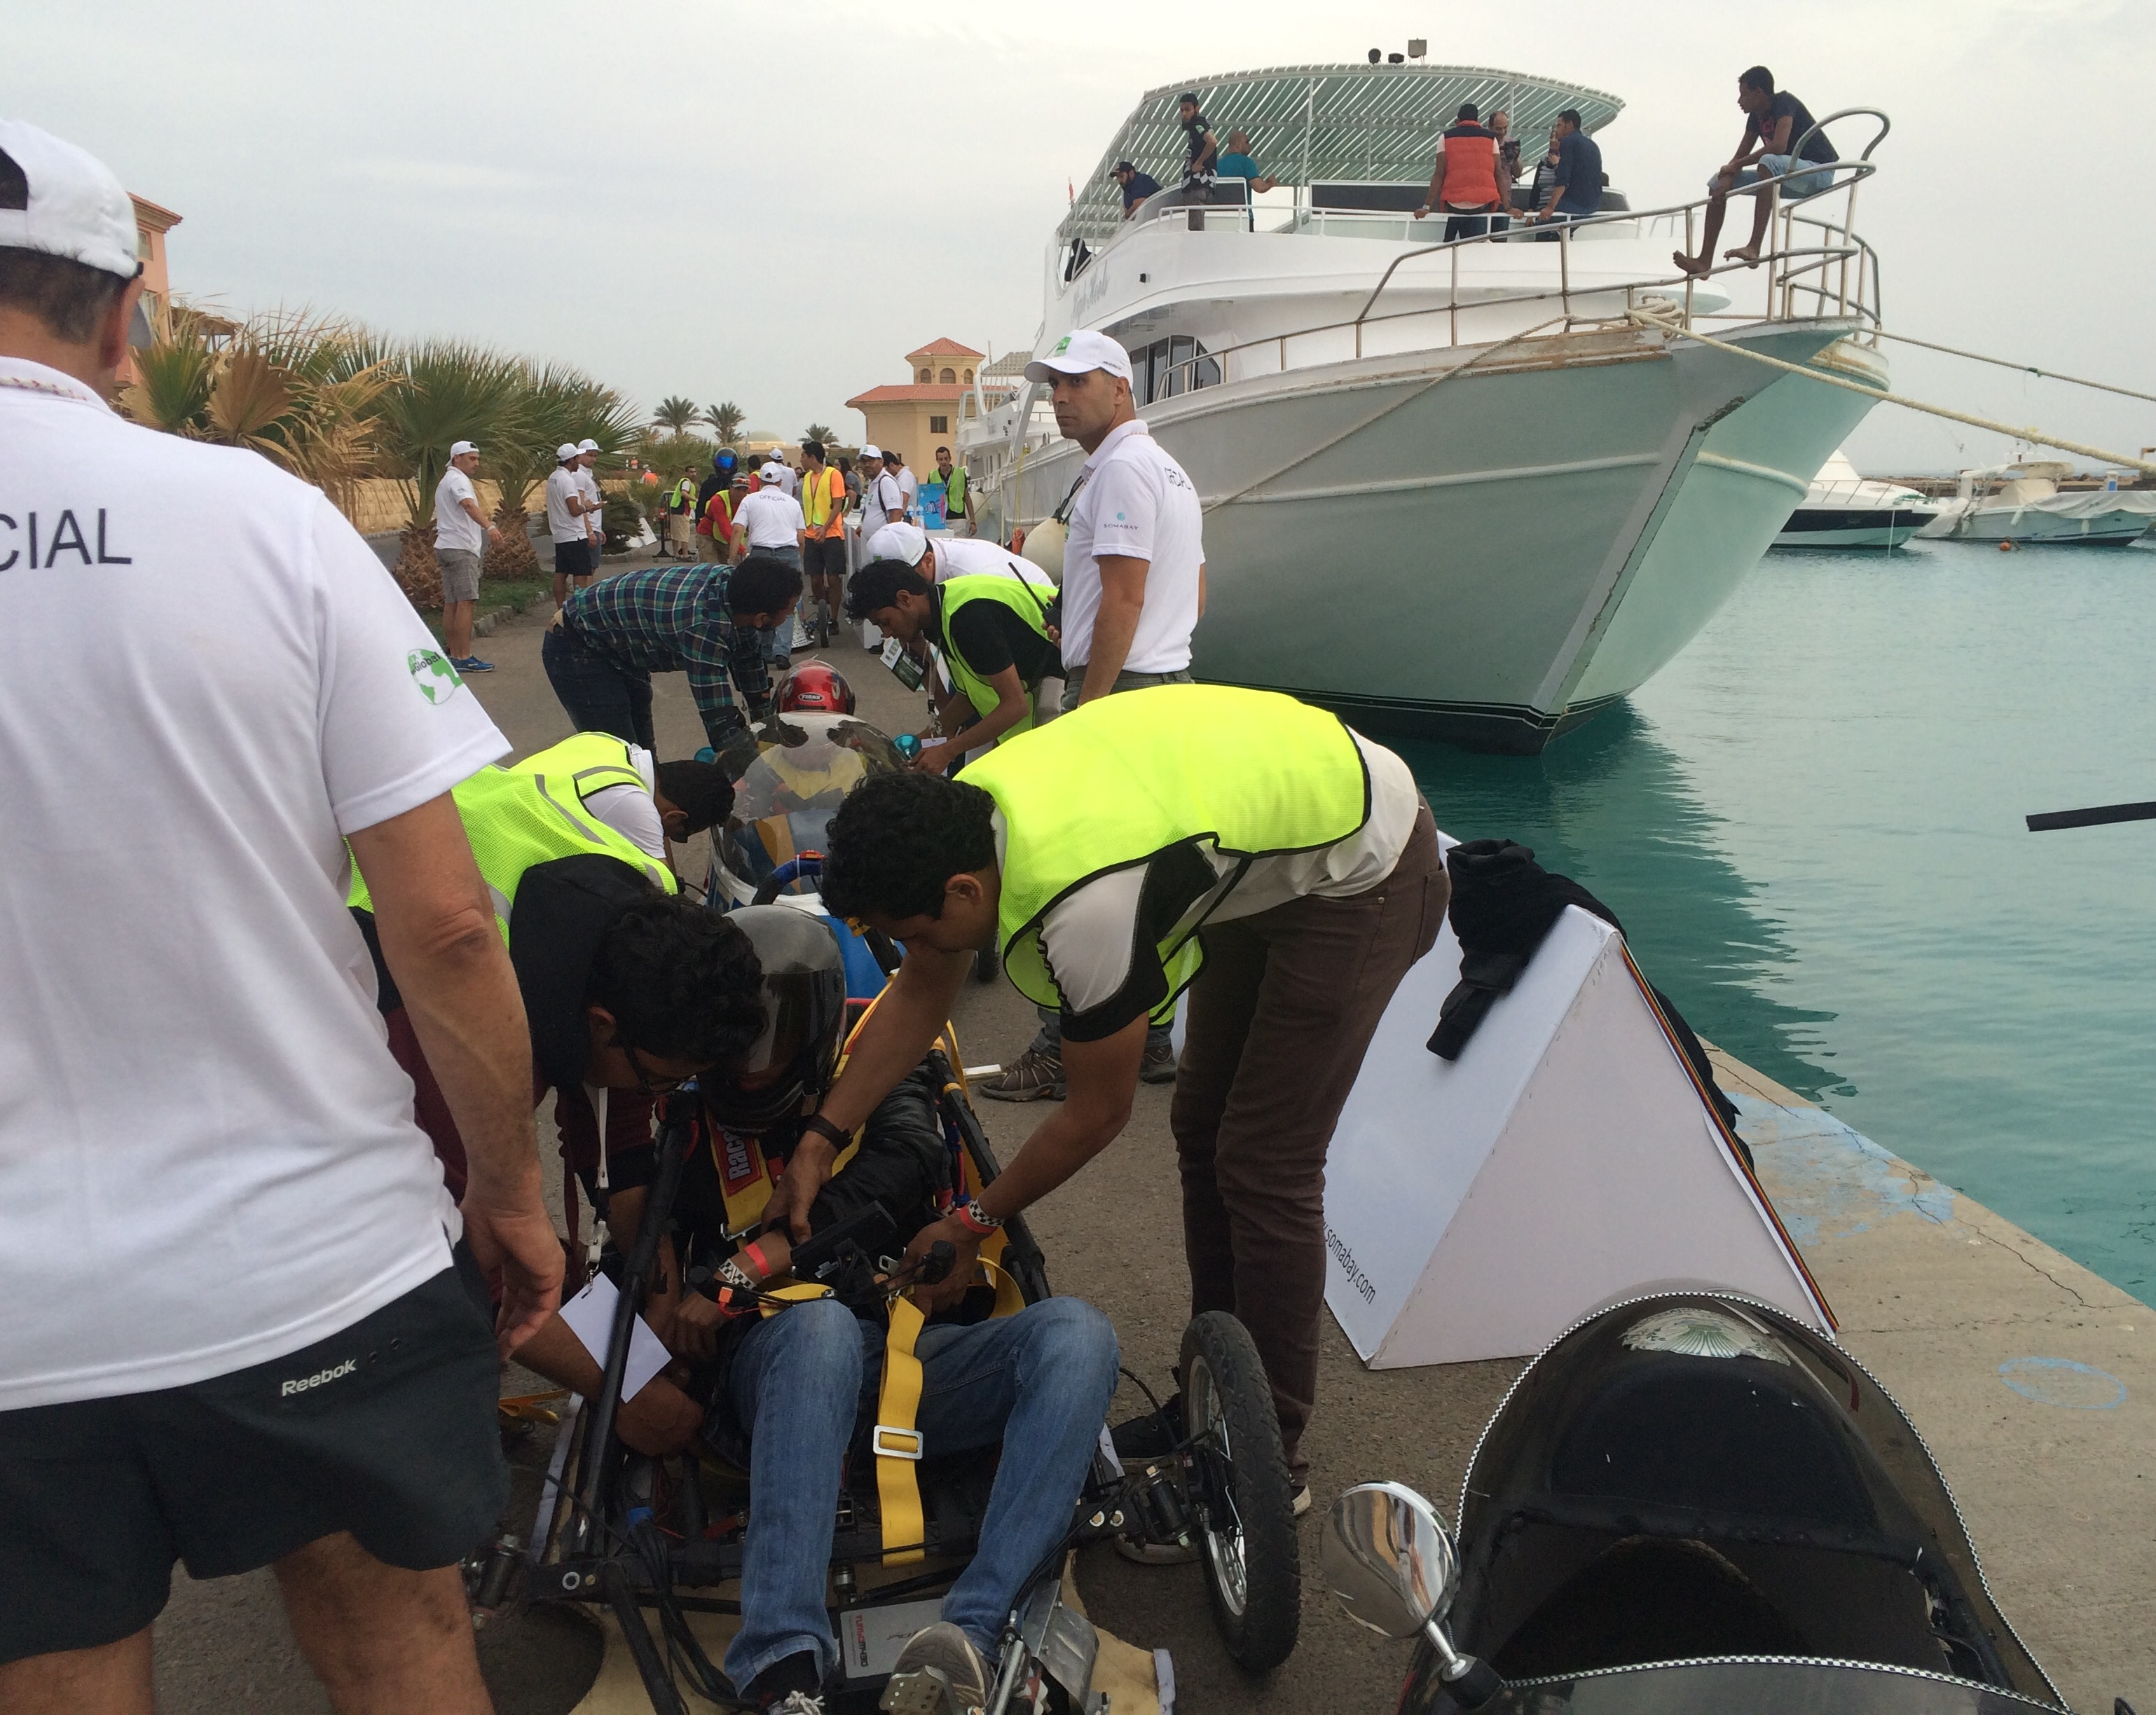 Changing drivers during the second race. Photo: Aya Nader